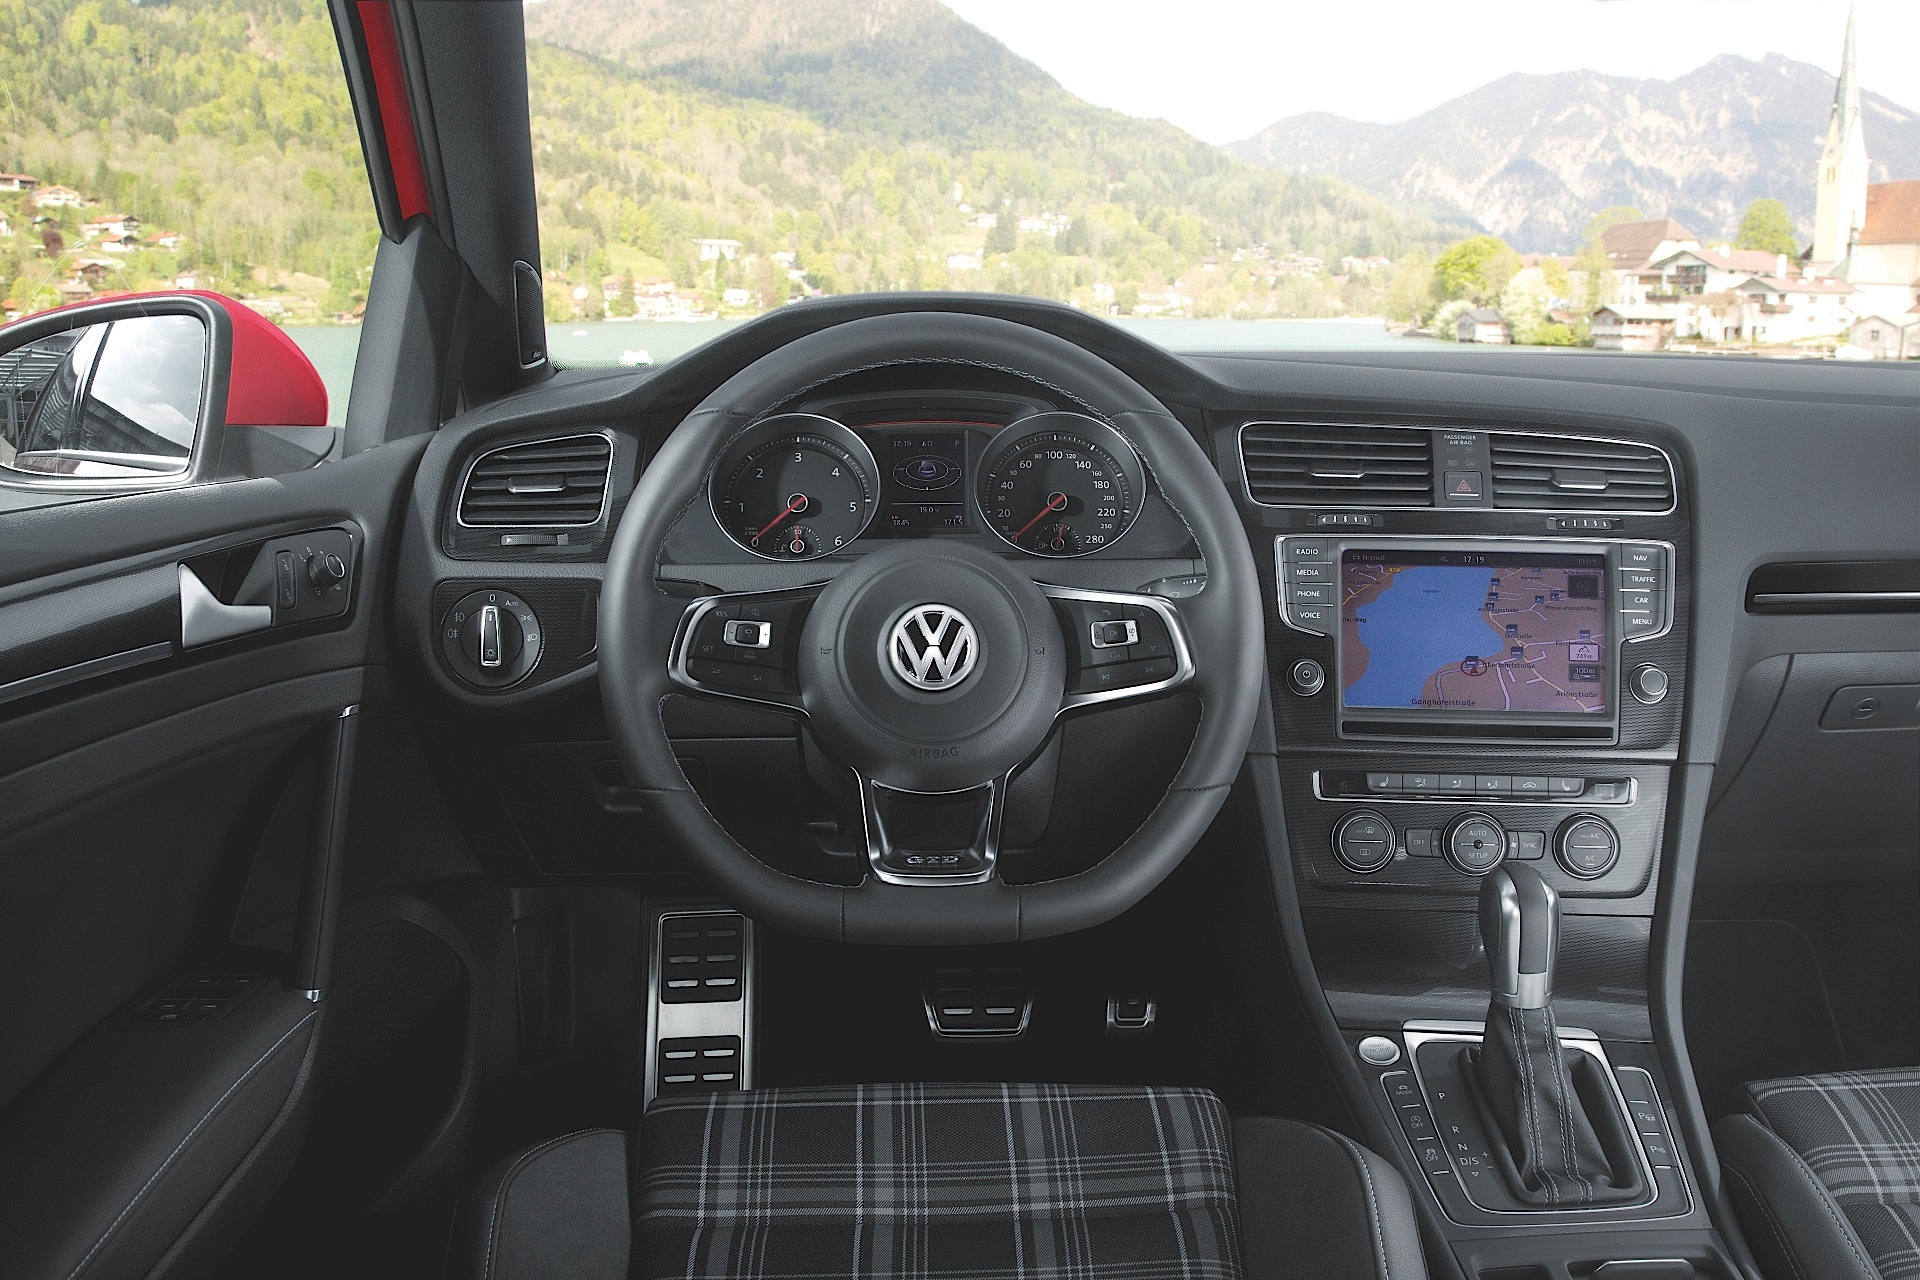 volkswagen golf gtd 3 doors specs 2013 2014 2015 2016. Black Bedroom Furniture Sets. Home Design Ideas